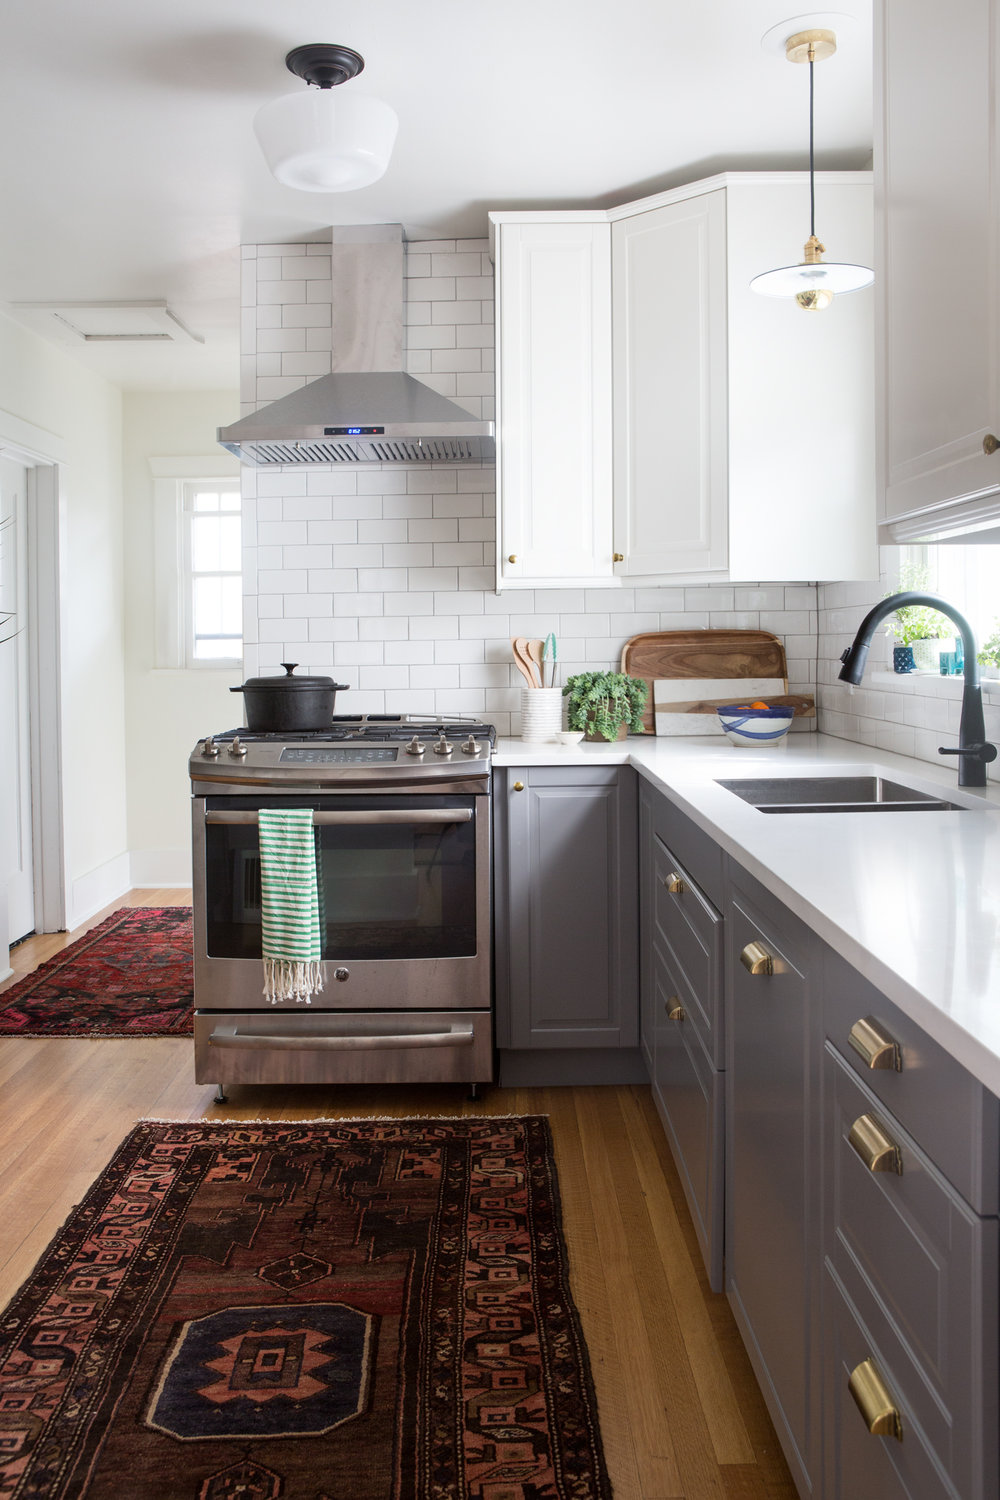 NewtonStreet_Kitchen_103117_01.jpg